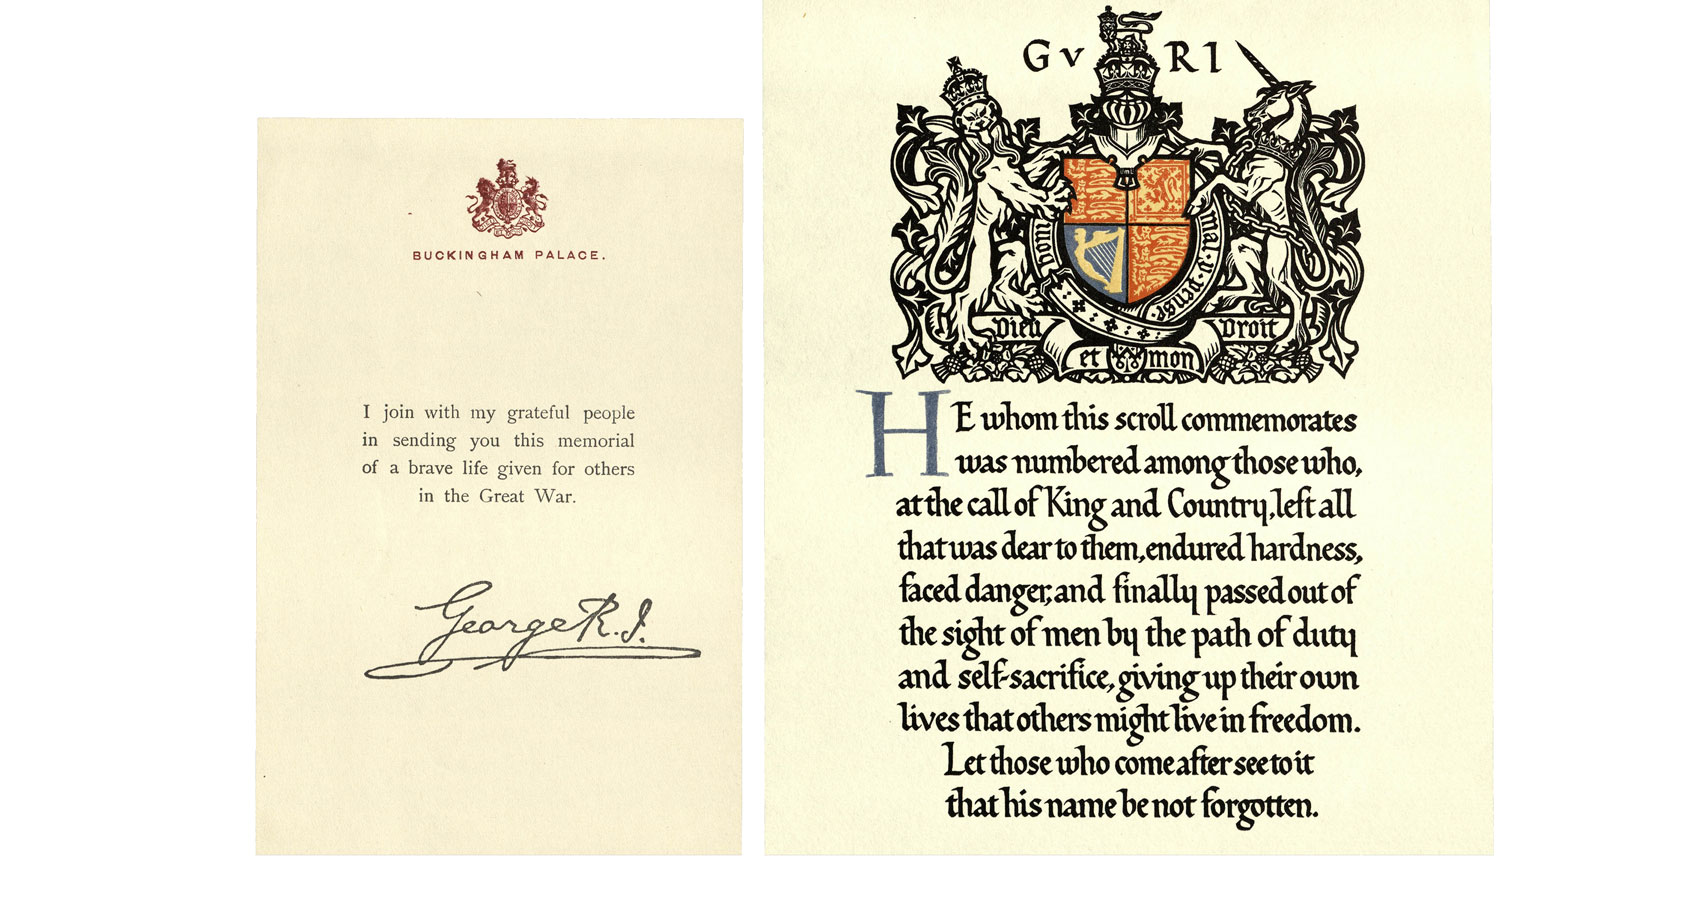 King George letter of condolence